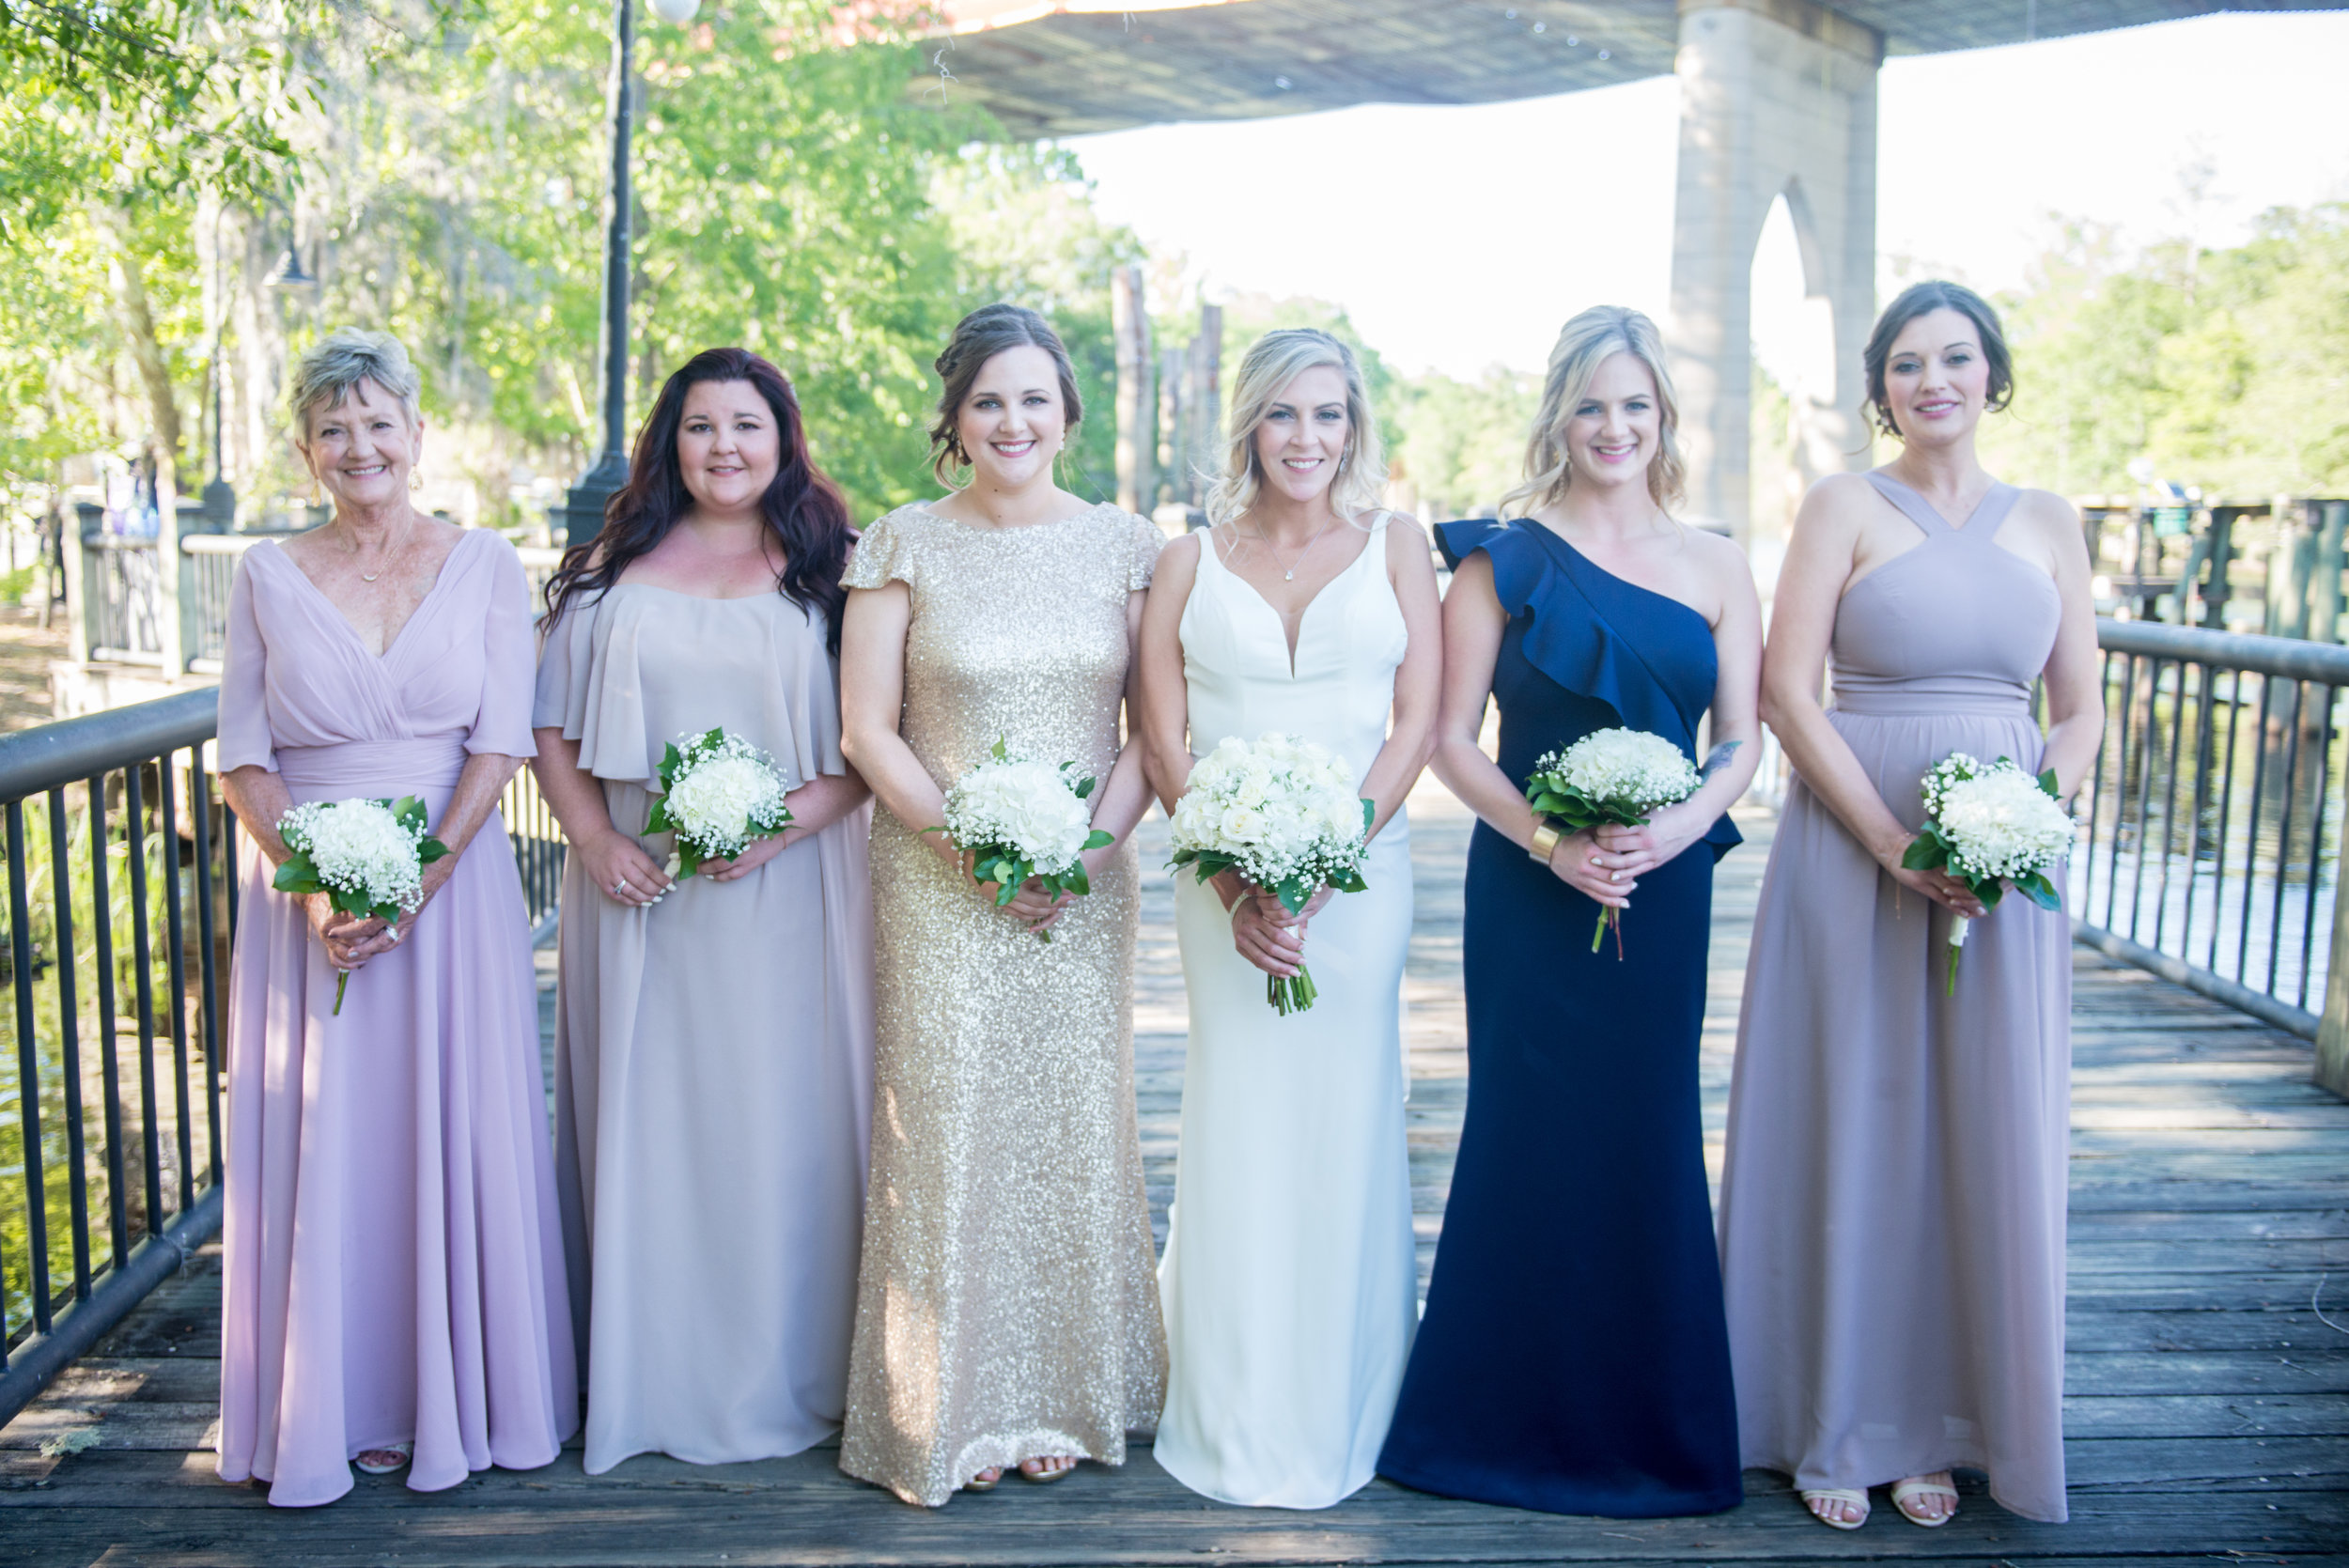 Bride & Bridesmaids - EVENTS BY SANTANA.jpg